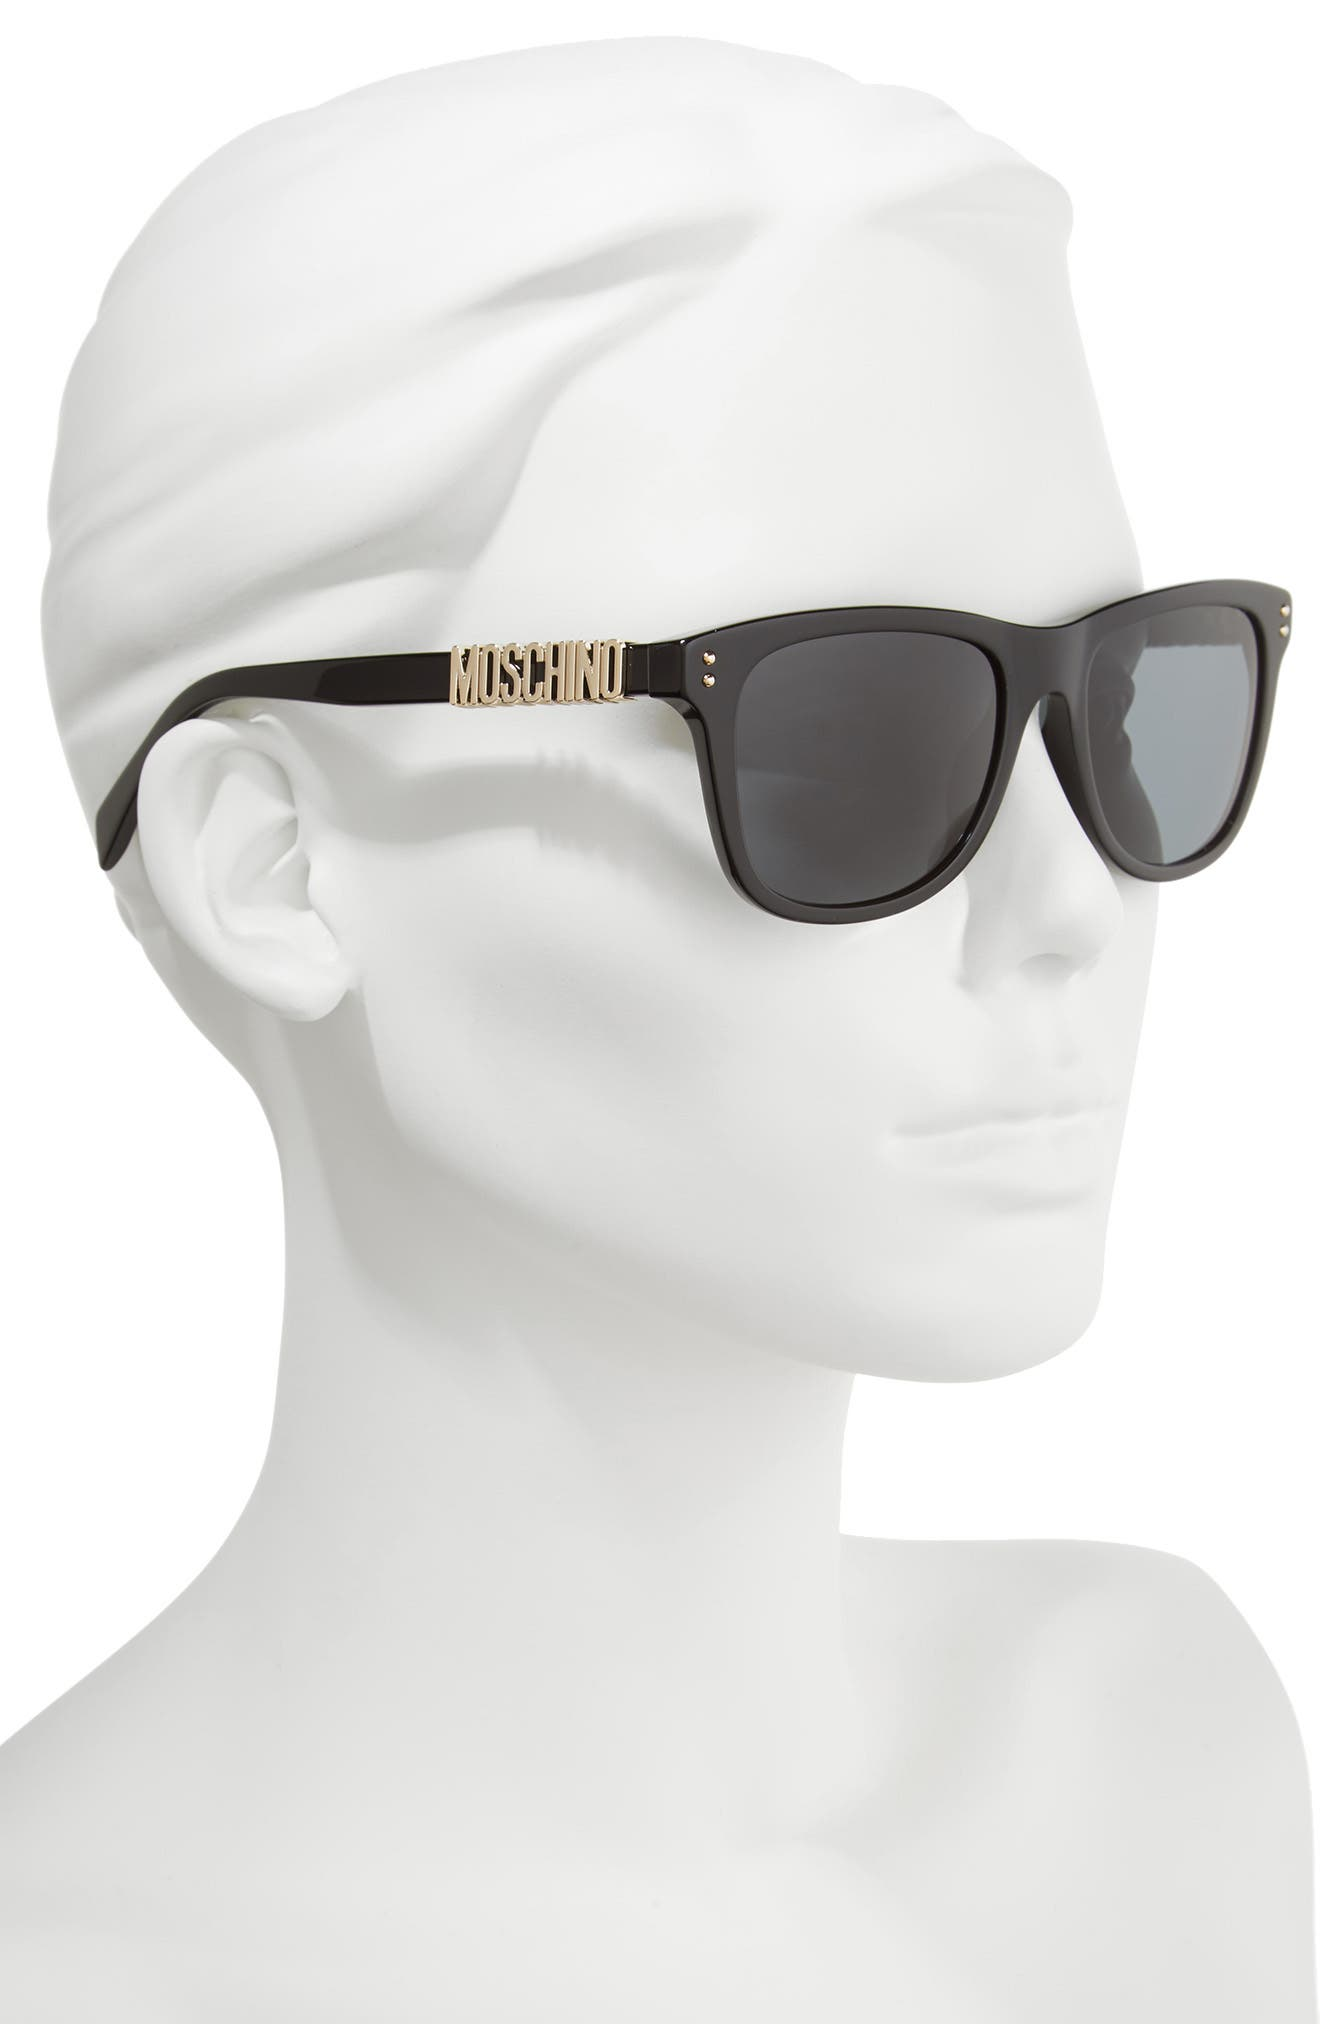 MOSCHINO, 53mm Polarized Sunglasses, Alternate thumbnail 2, color, BLACK